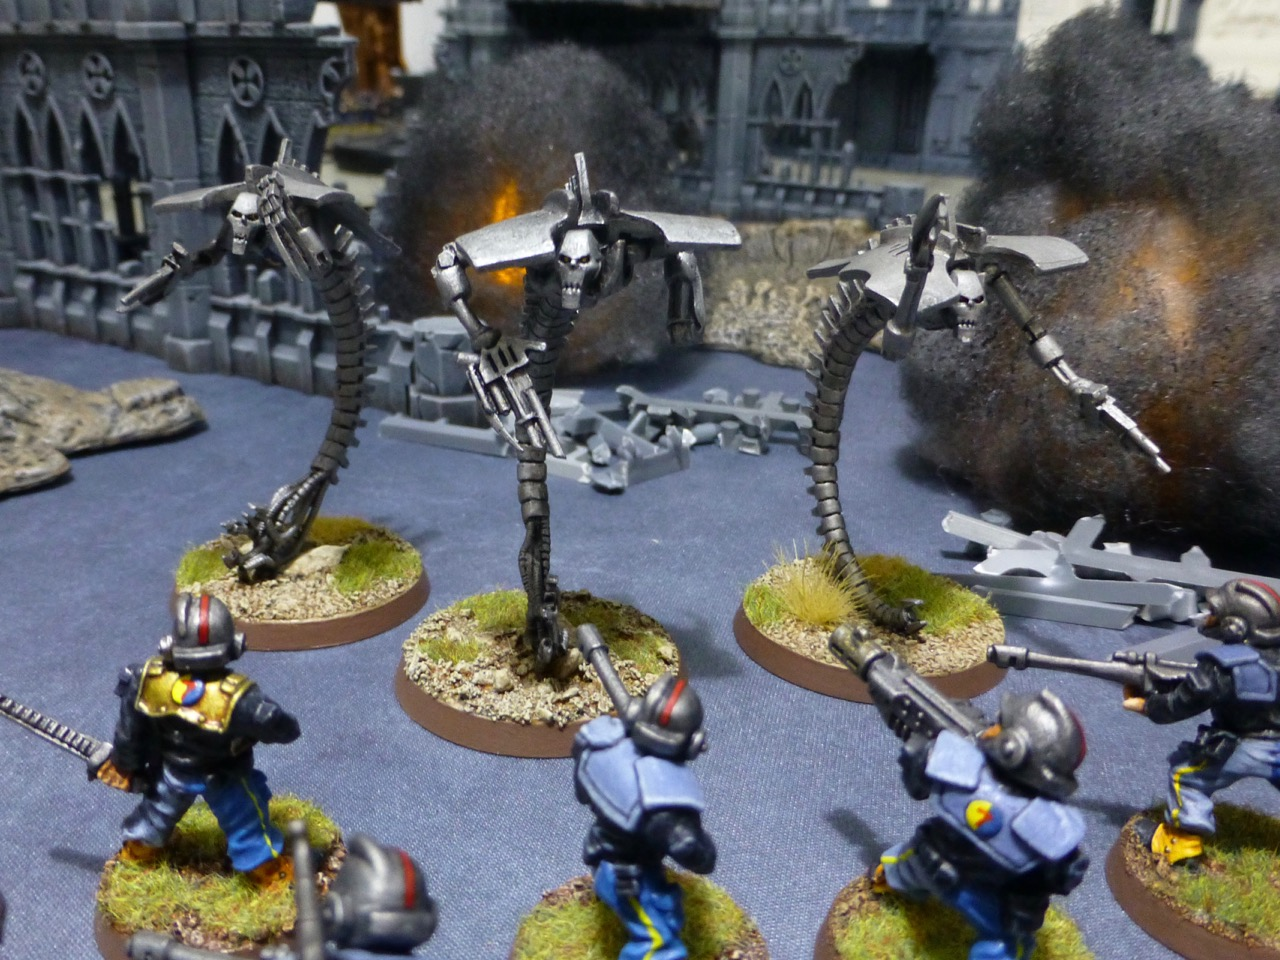 Three ghostlike silver robots rushing a squad of human soldiers